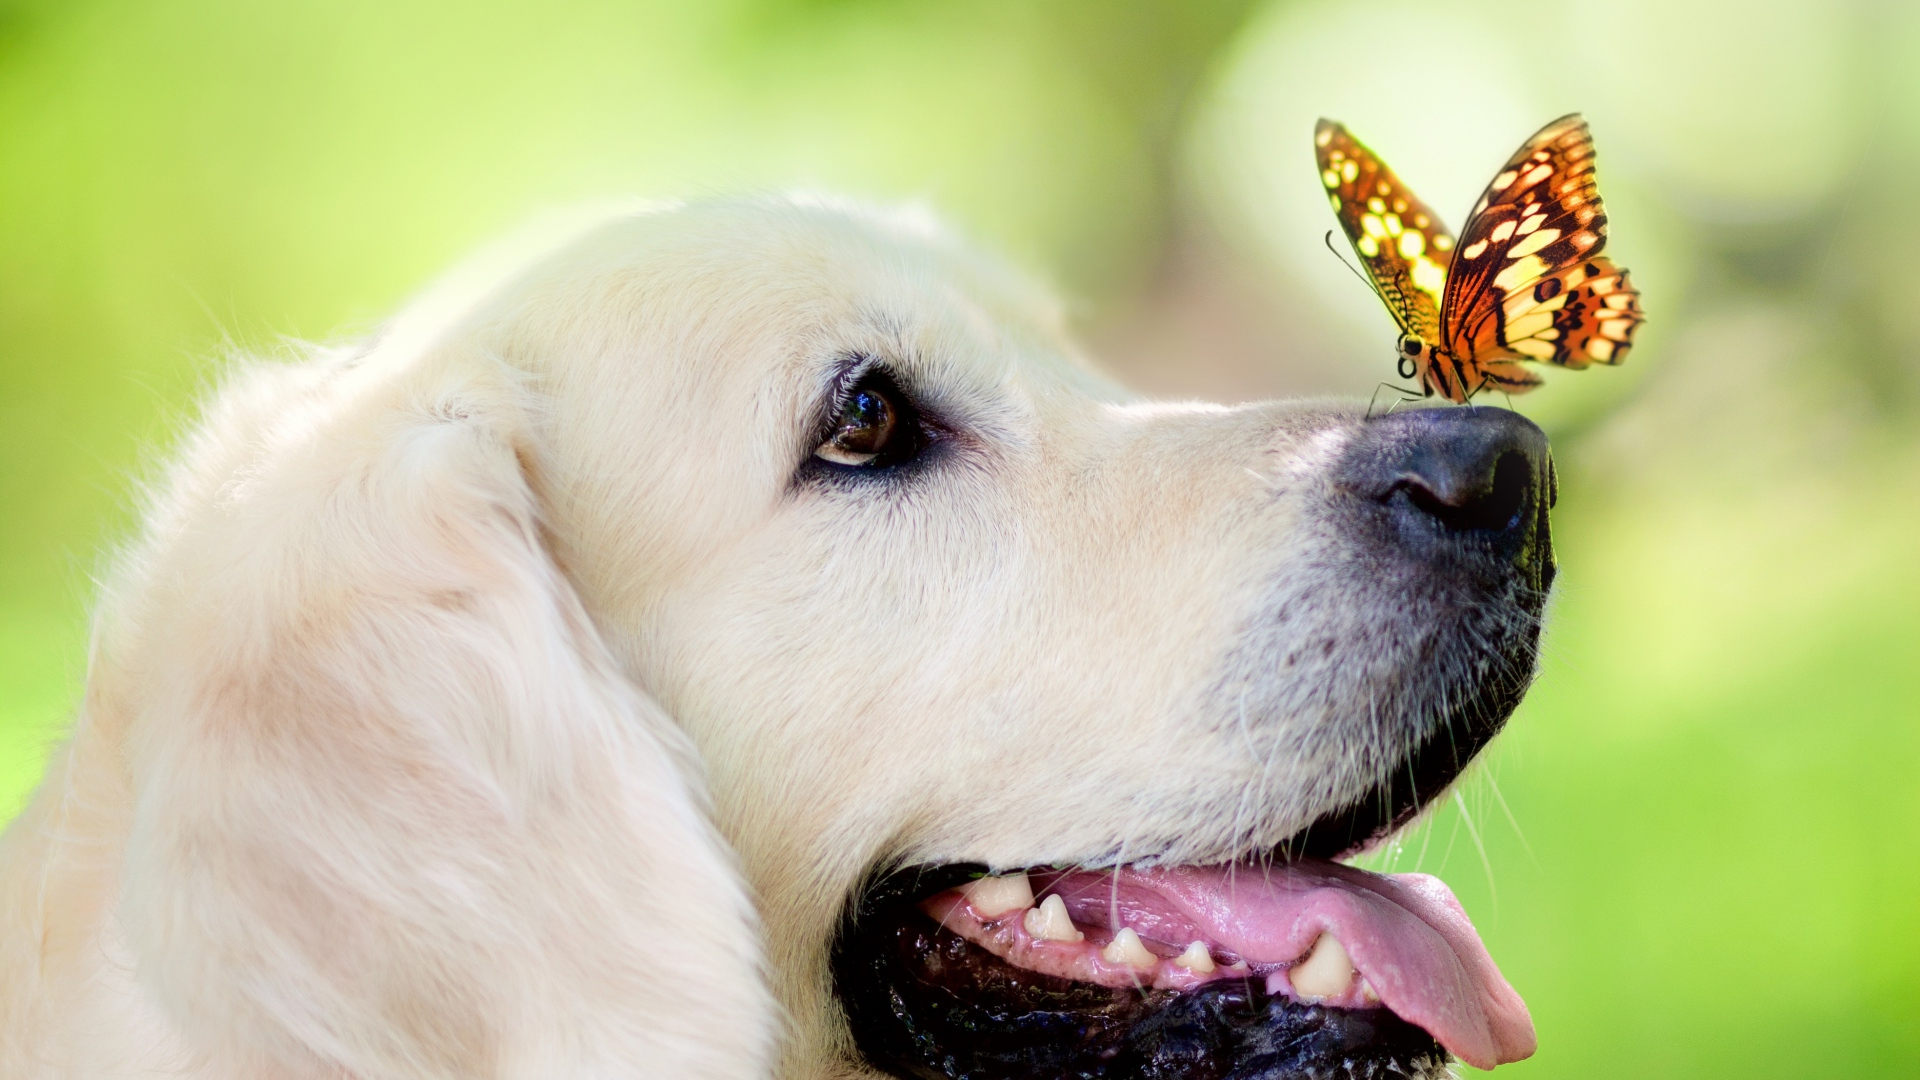 dog_muzzle_butterfly_tongue_sticking_out_spring_summer_93617_1920x1080